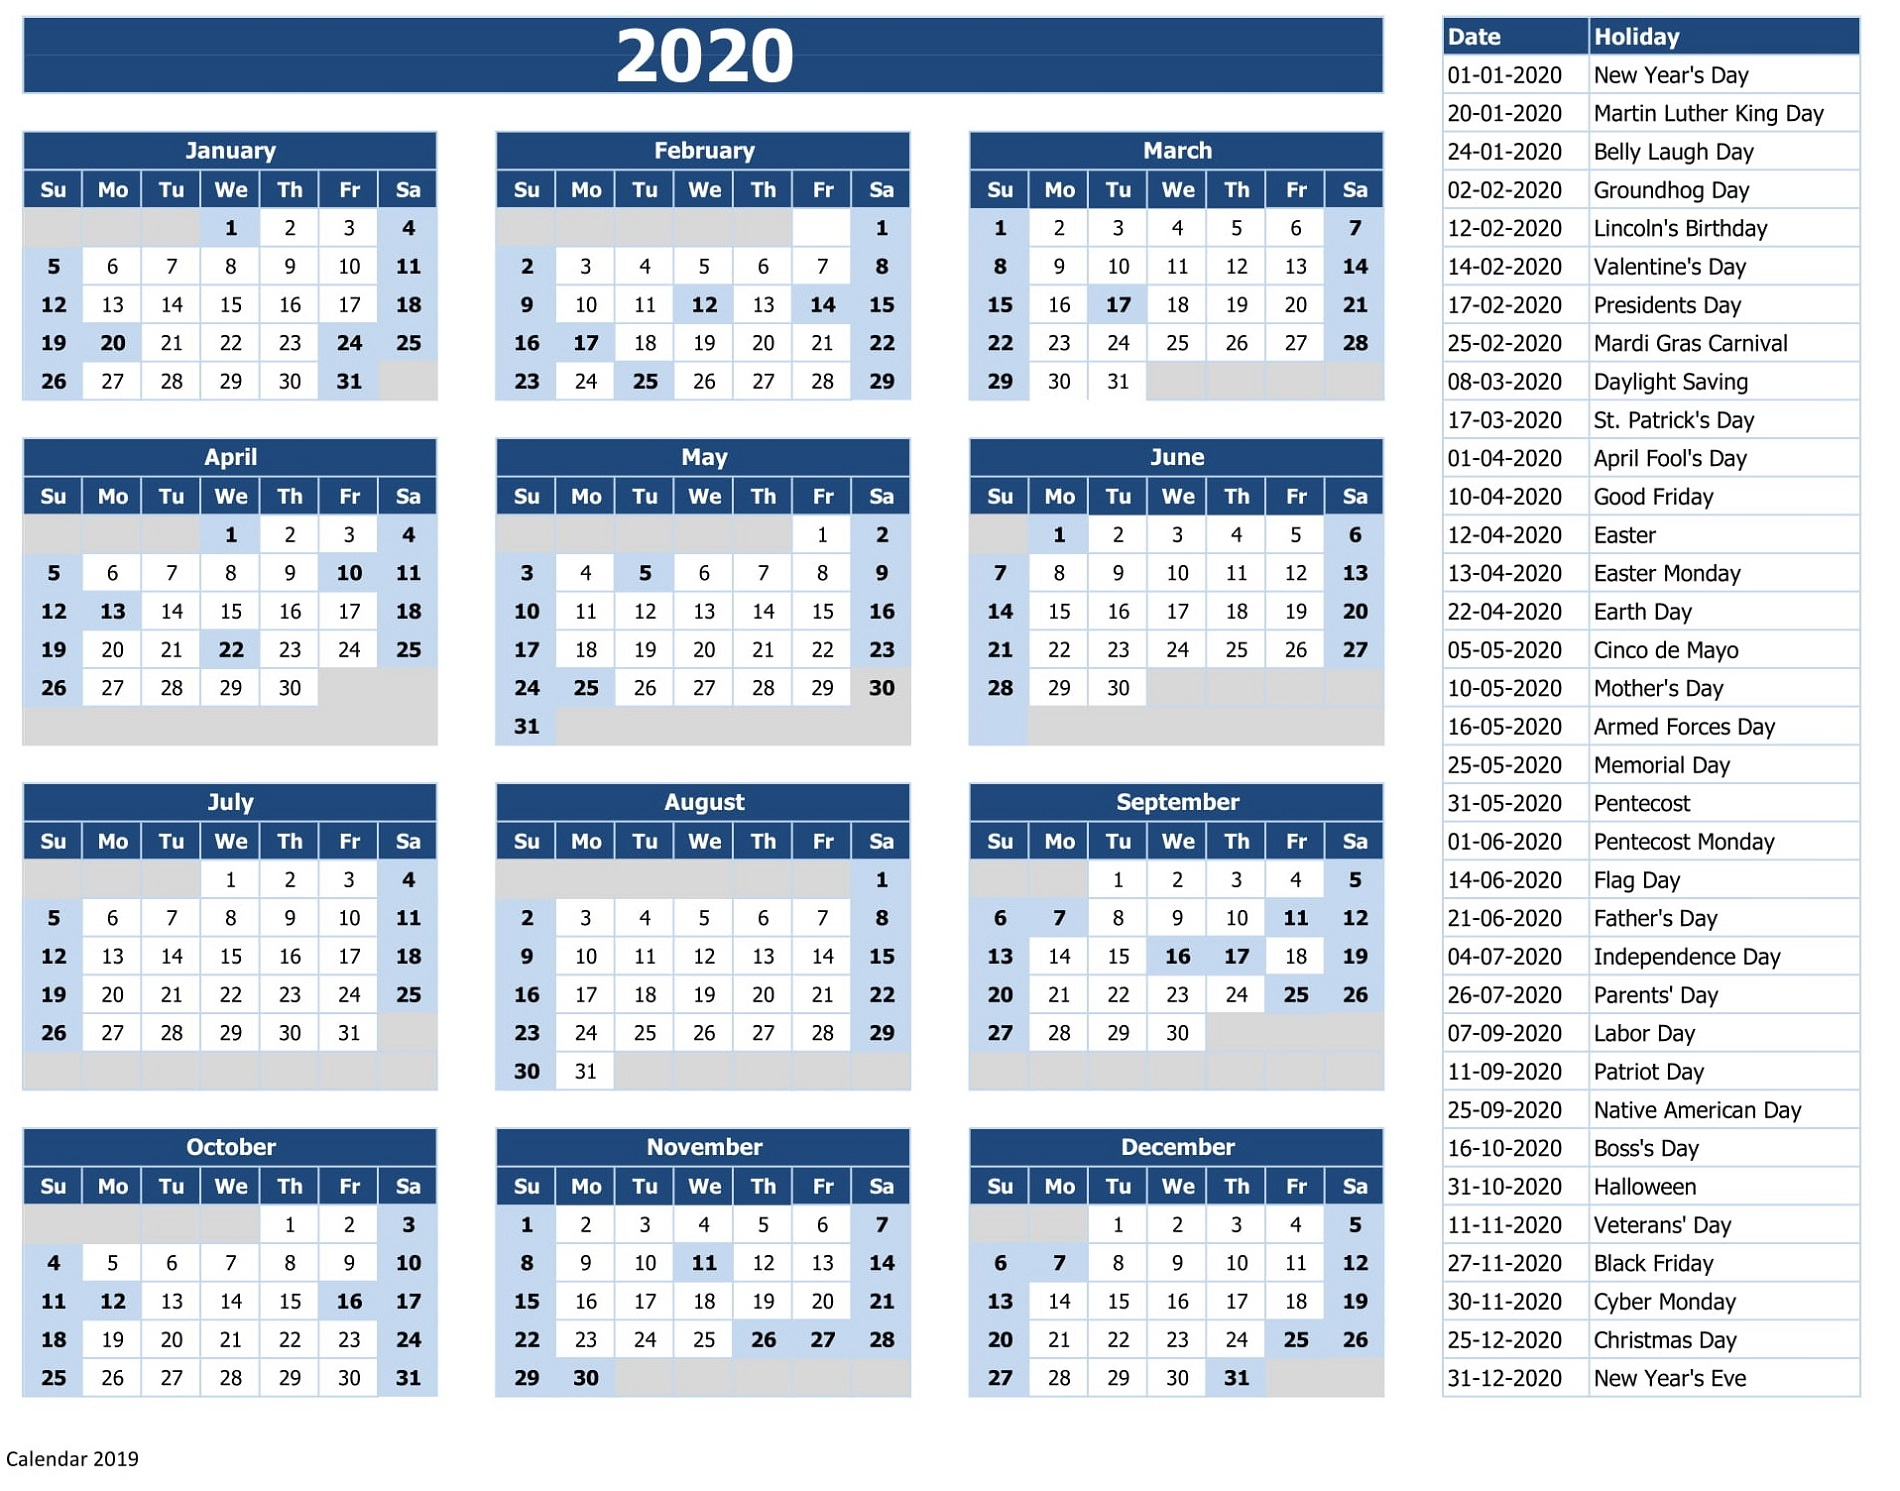 2020 Calendar Printable With Holidays And Notes | Calendar